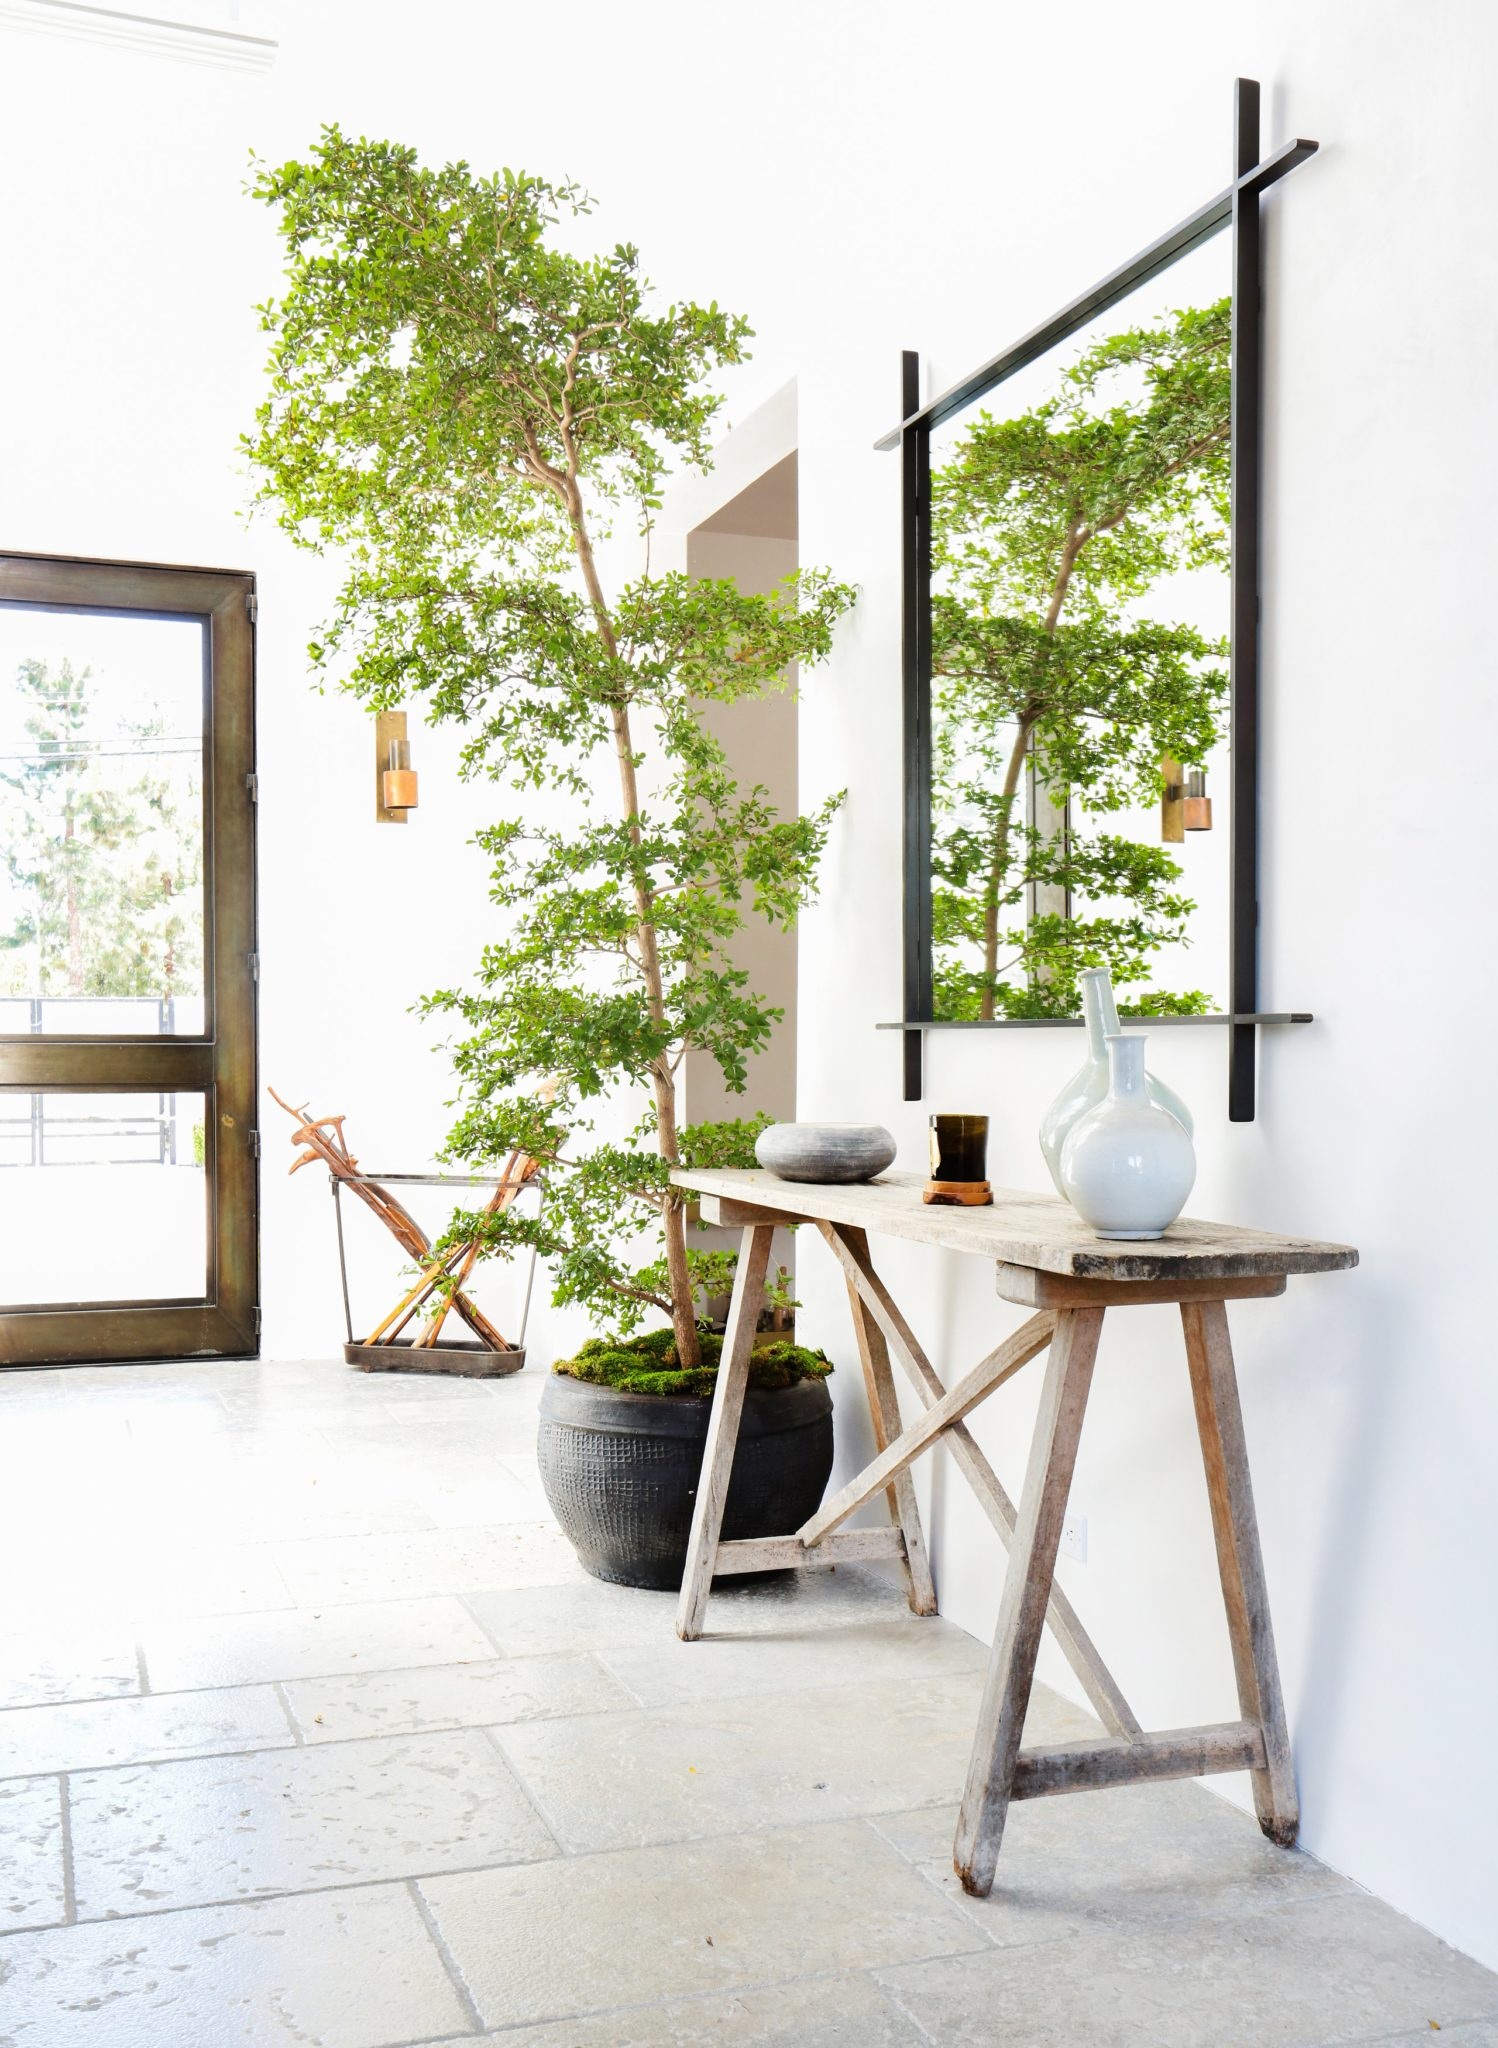 Grayfox: Greenery Makes a Bold Statement in a Cool-Toned Entryway by Alexander Design